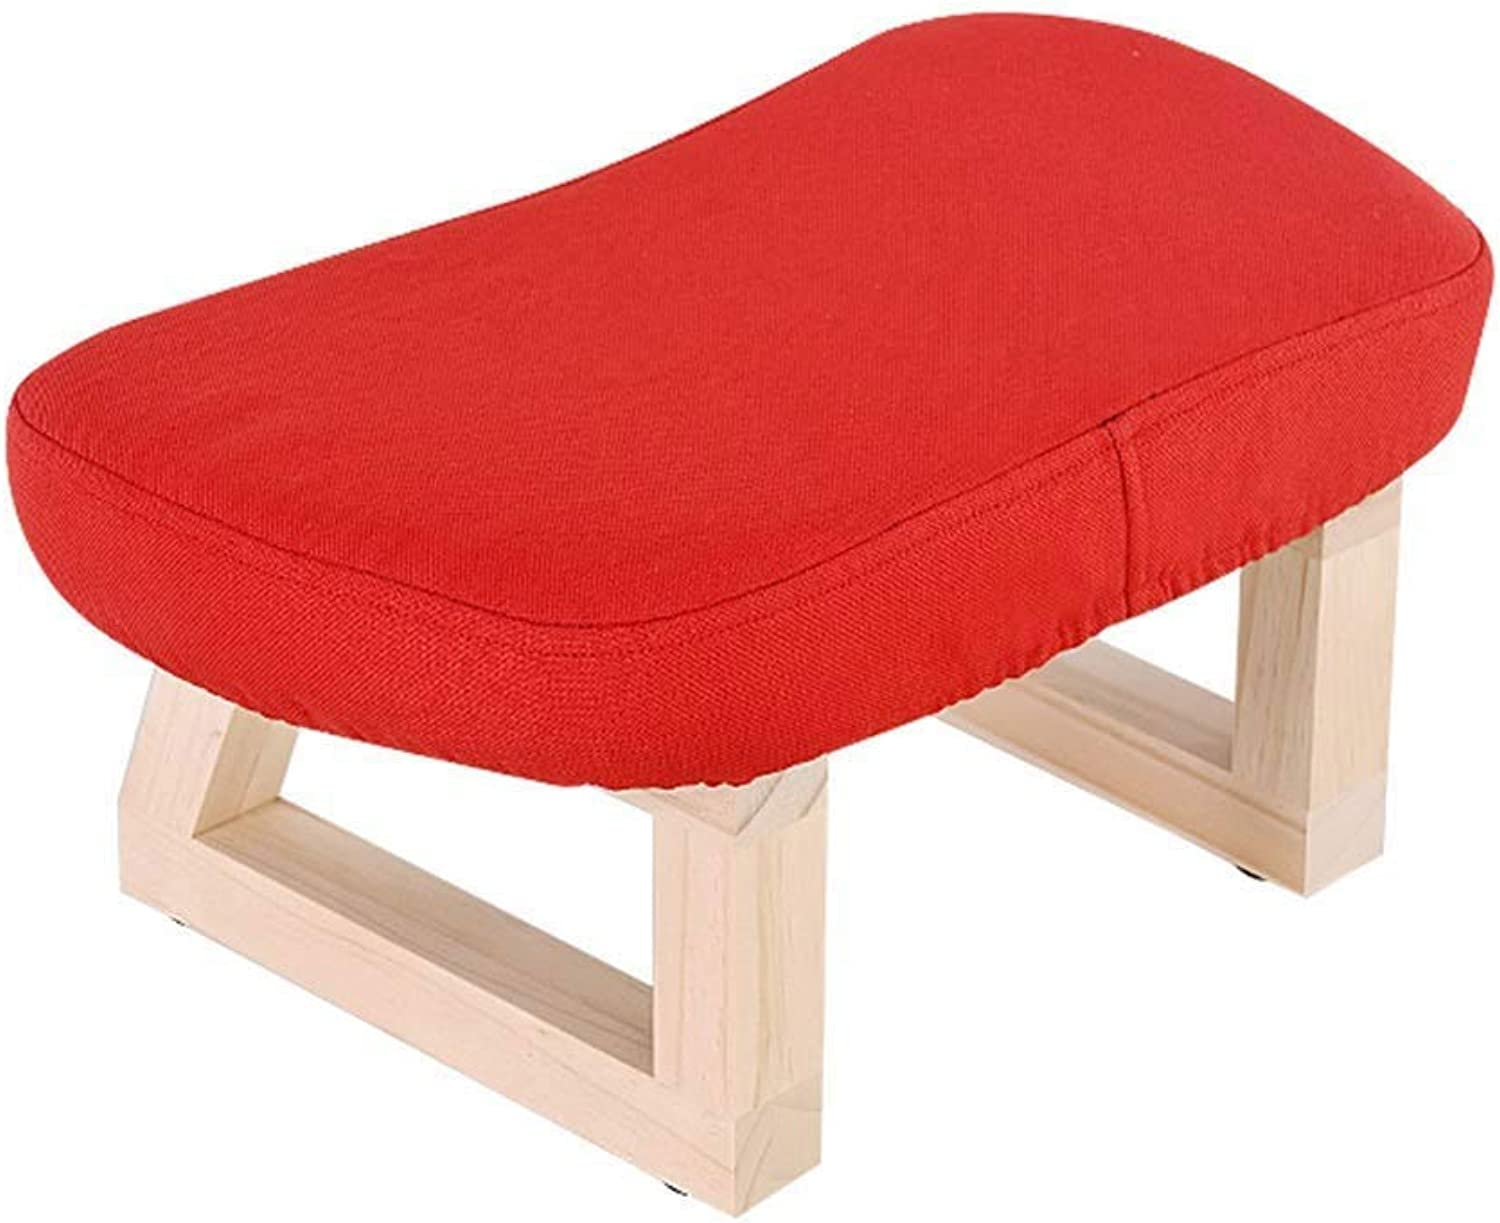 AJZGF Change shoes Stool Small Sofa Solid Wood Dwarf Fabric shoes Bench - Small Stool (color   D)